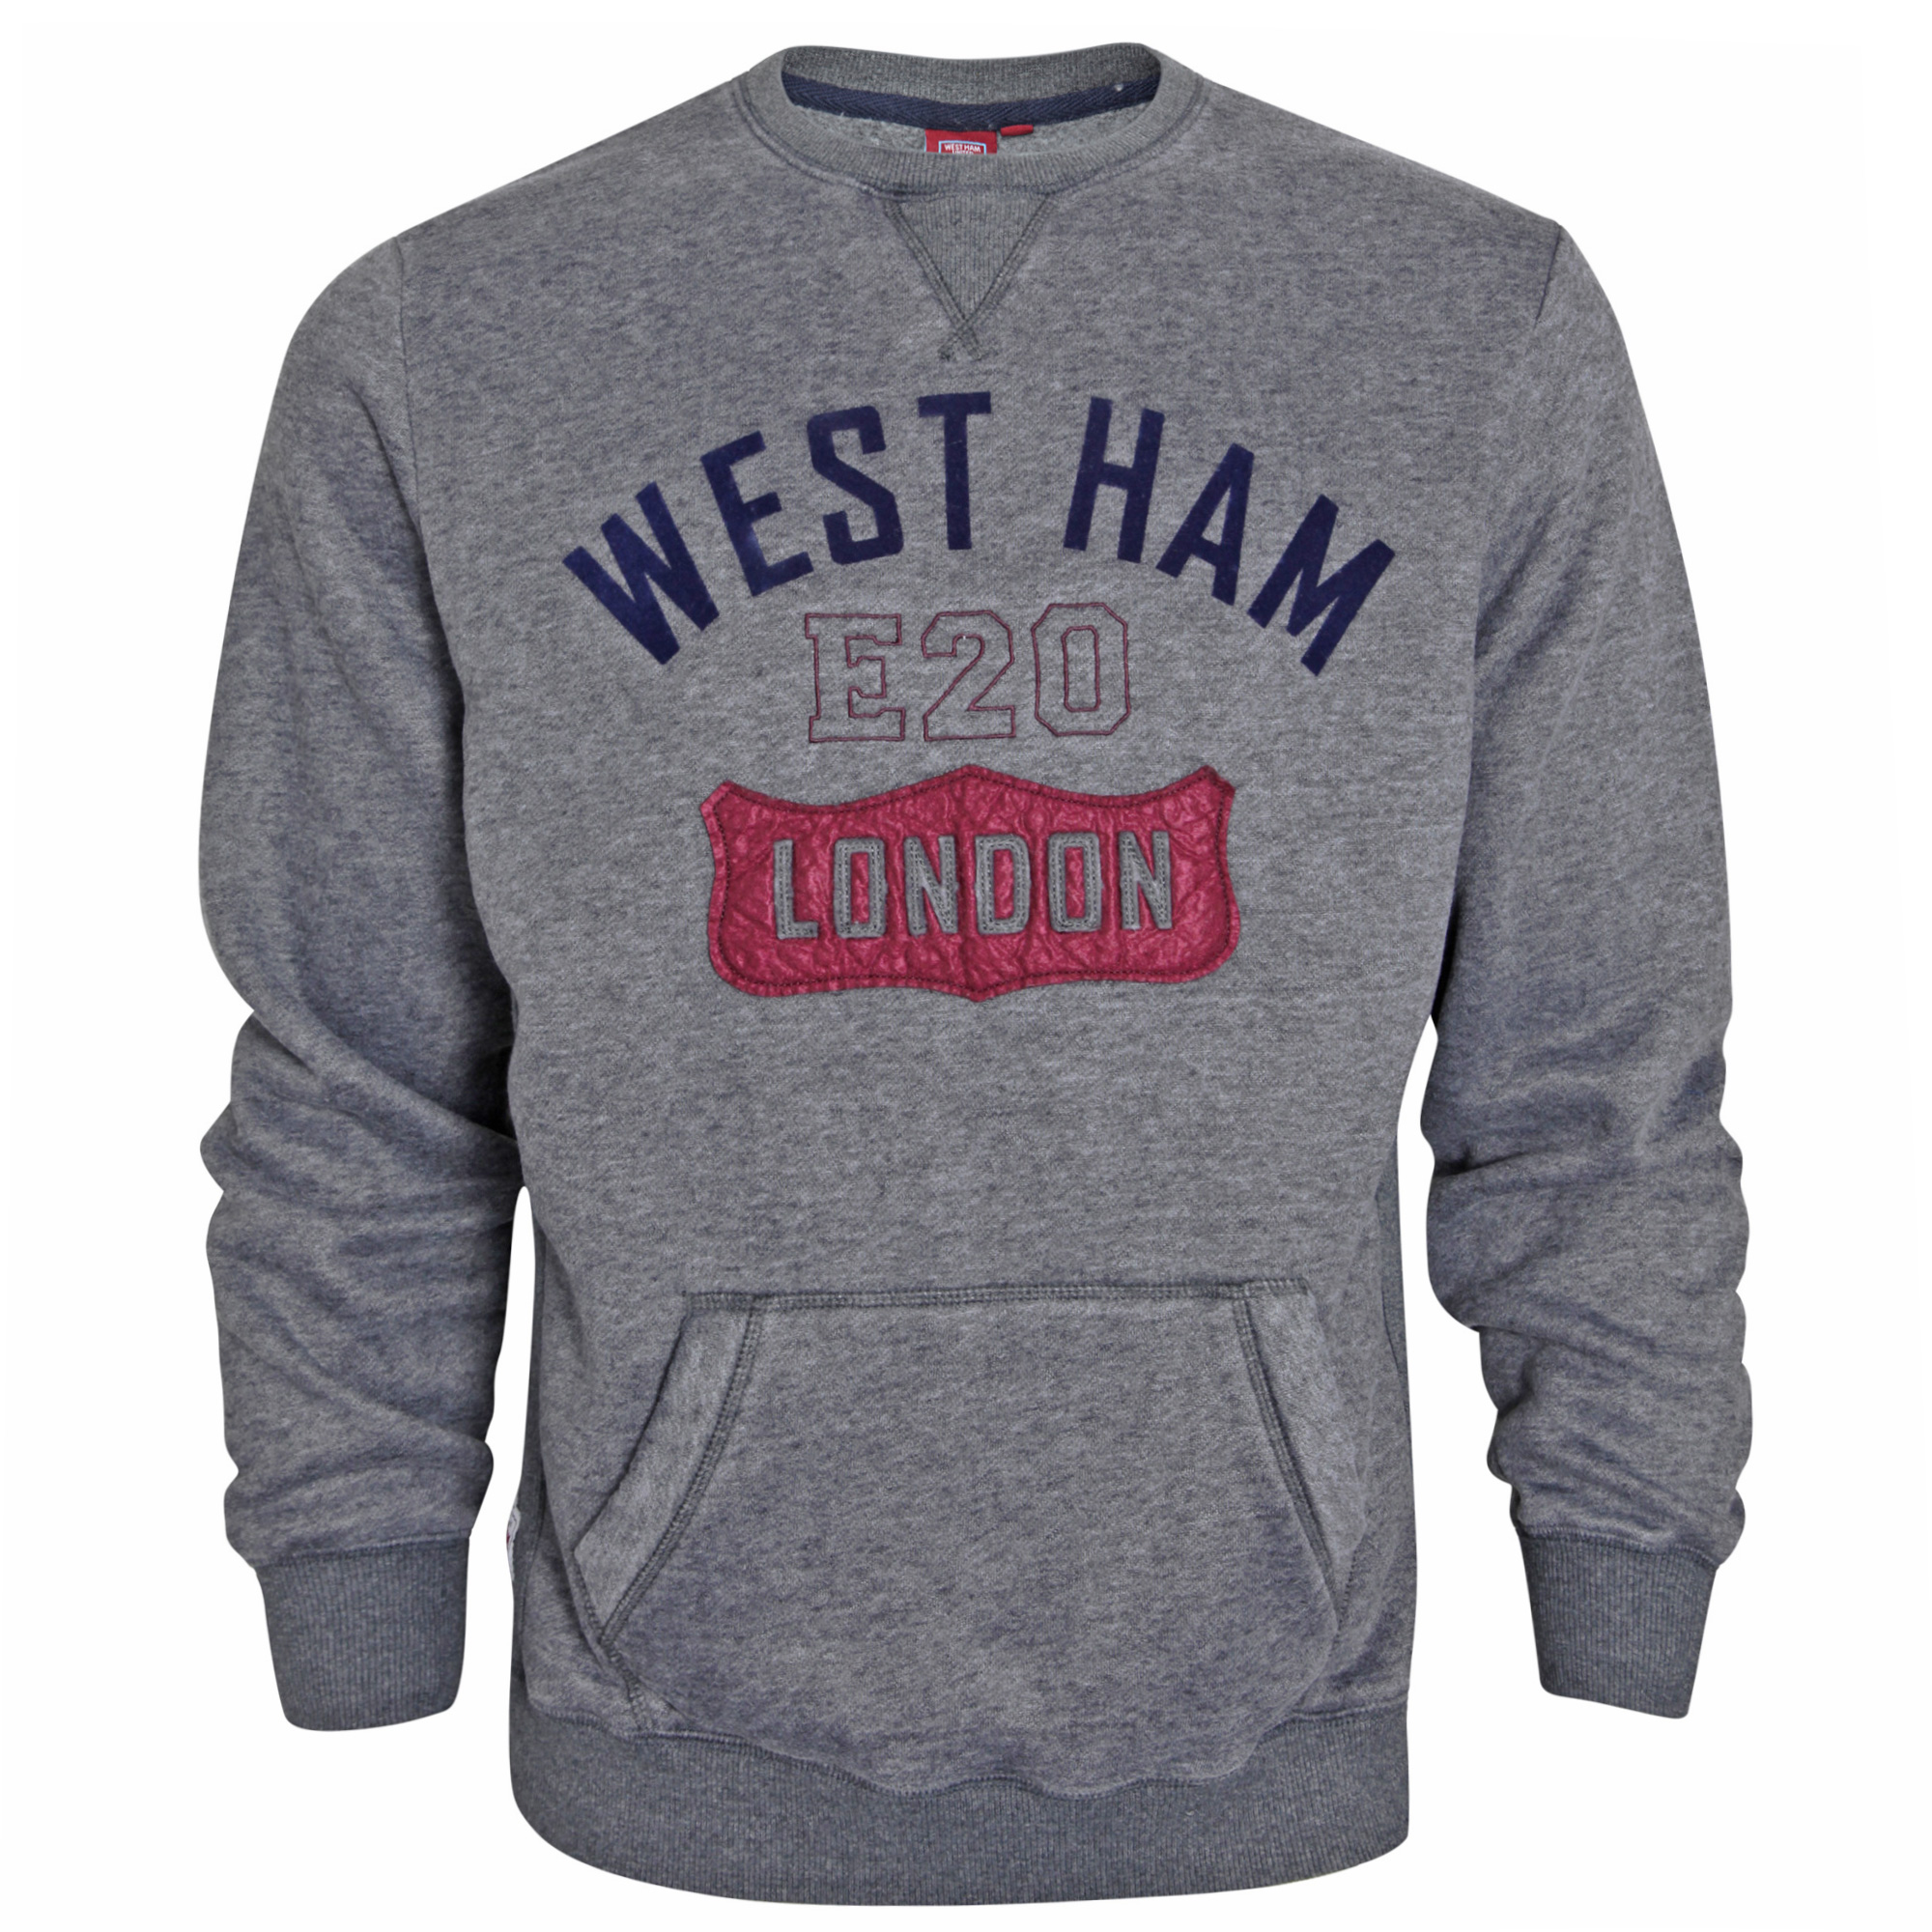 GREY WEST HAM SWEATSHIRT